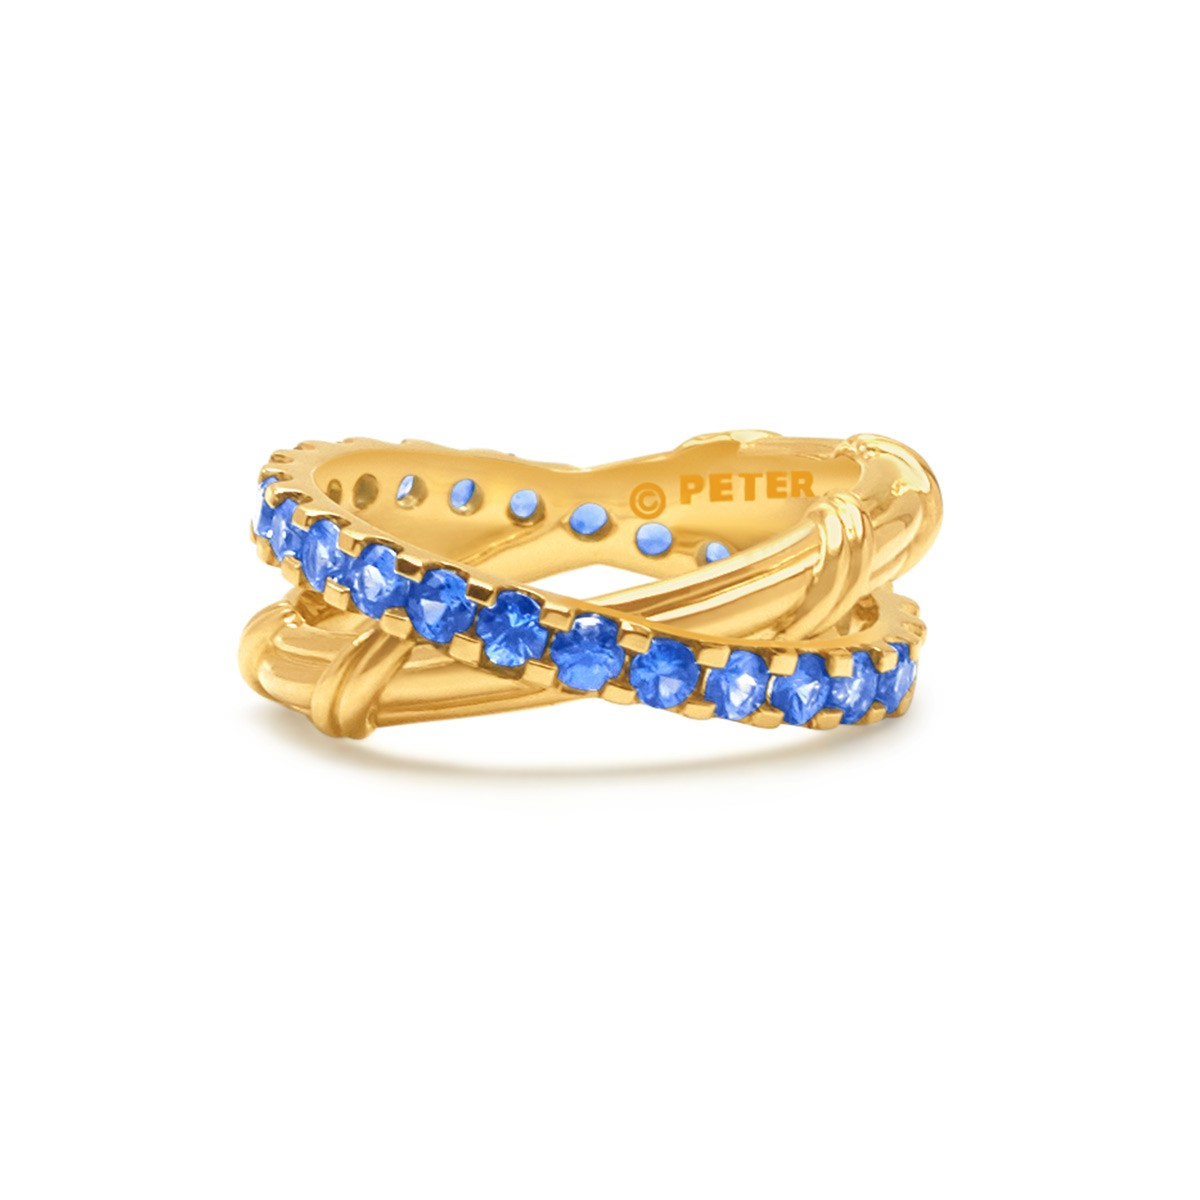 Heritage Criss Cross Ring with ceylon sapphires in 18K yellow gold